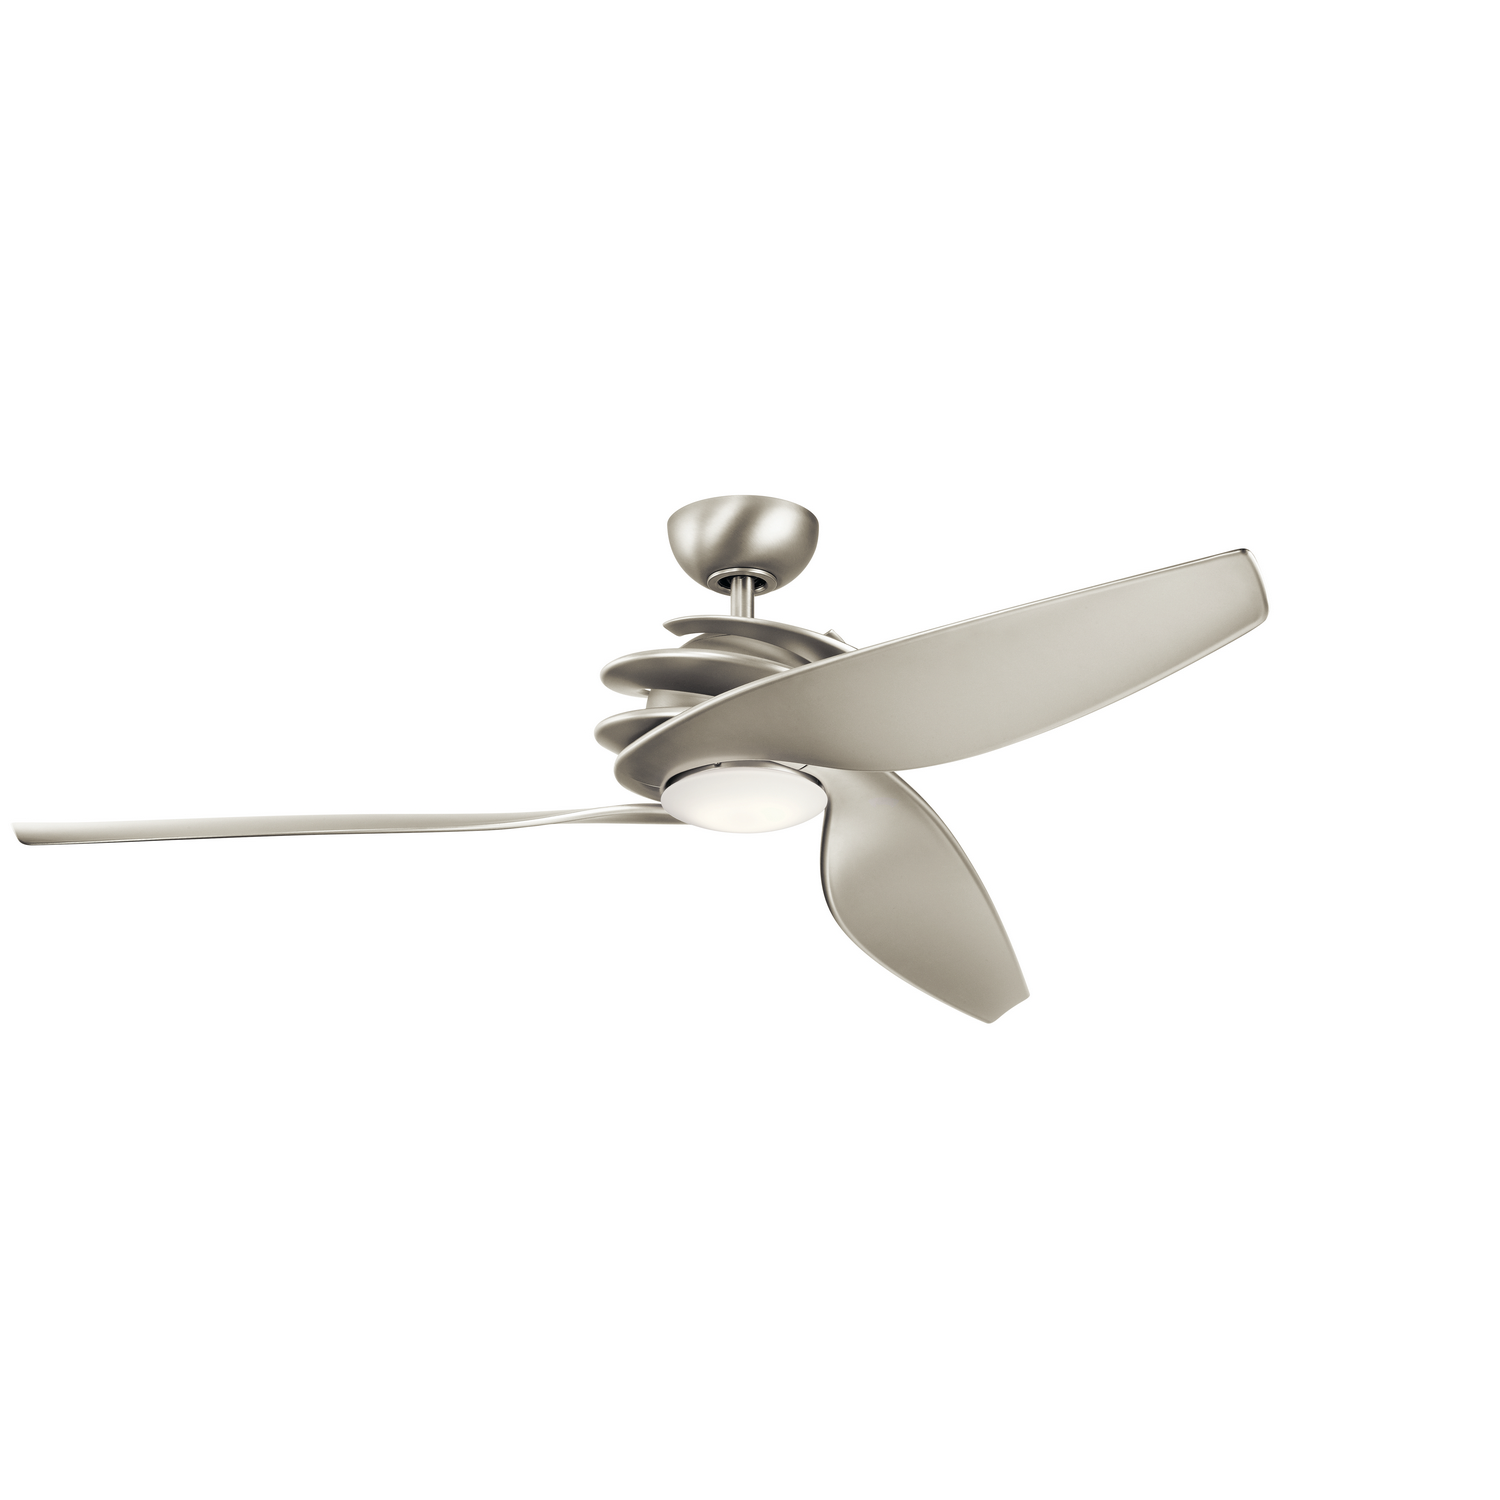 62 inchCeiling Fan from the Spyra collection by Kichler 300700NI